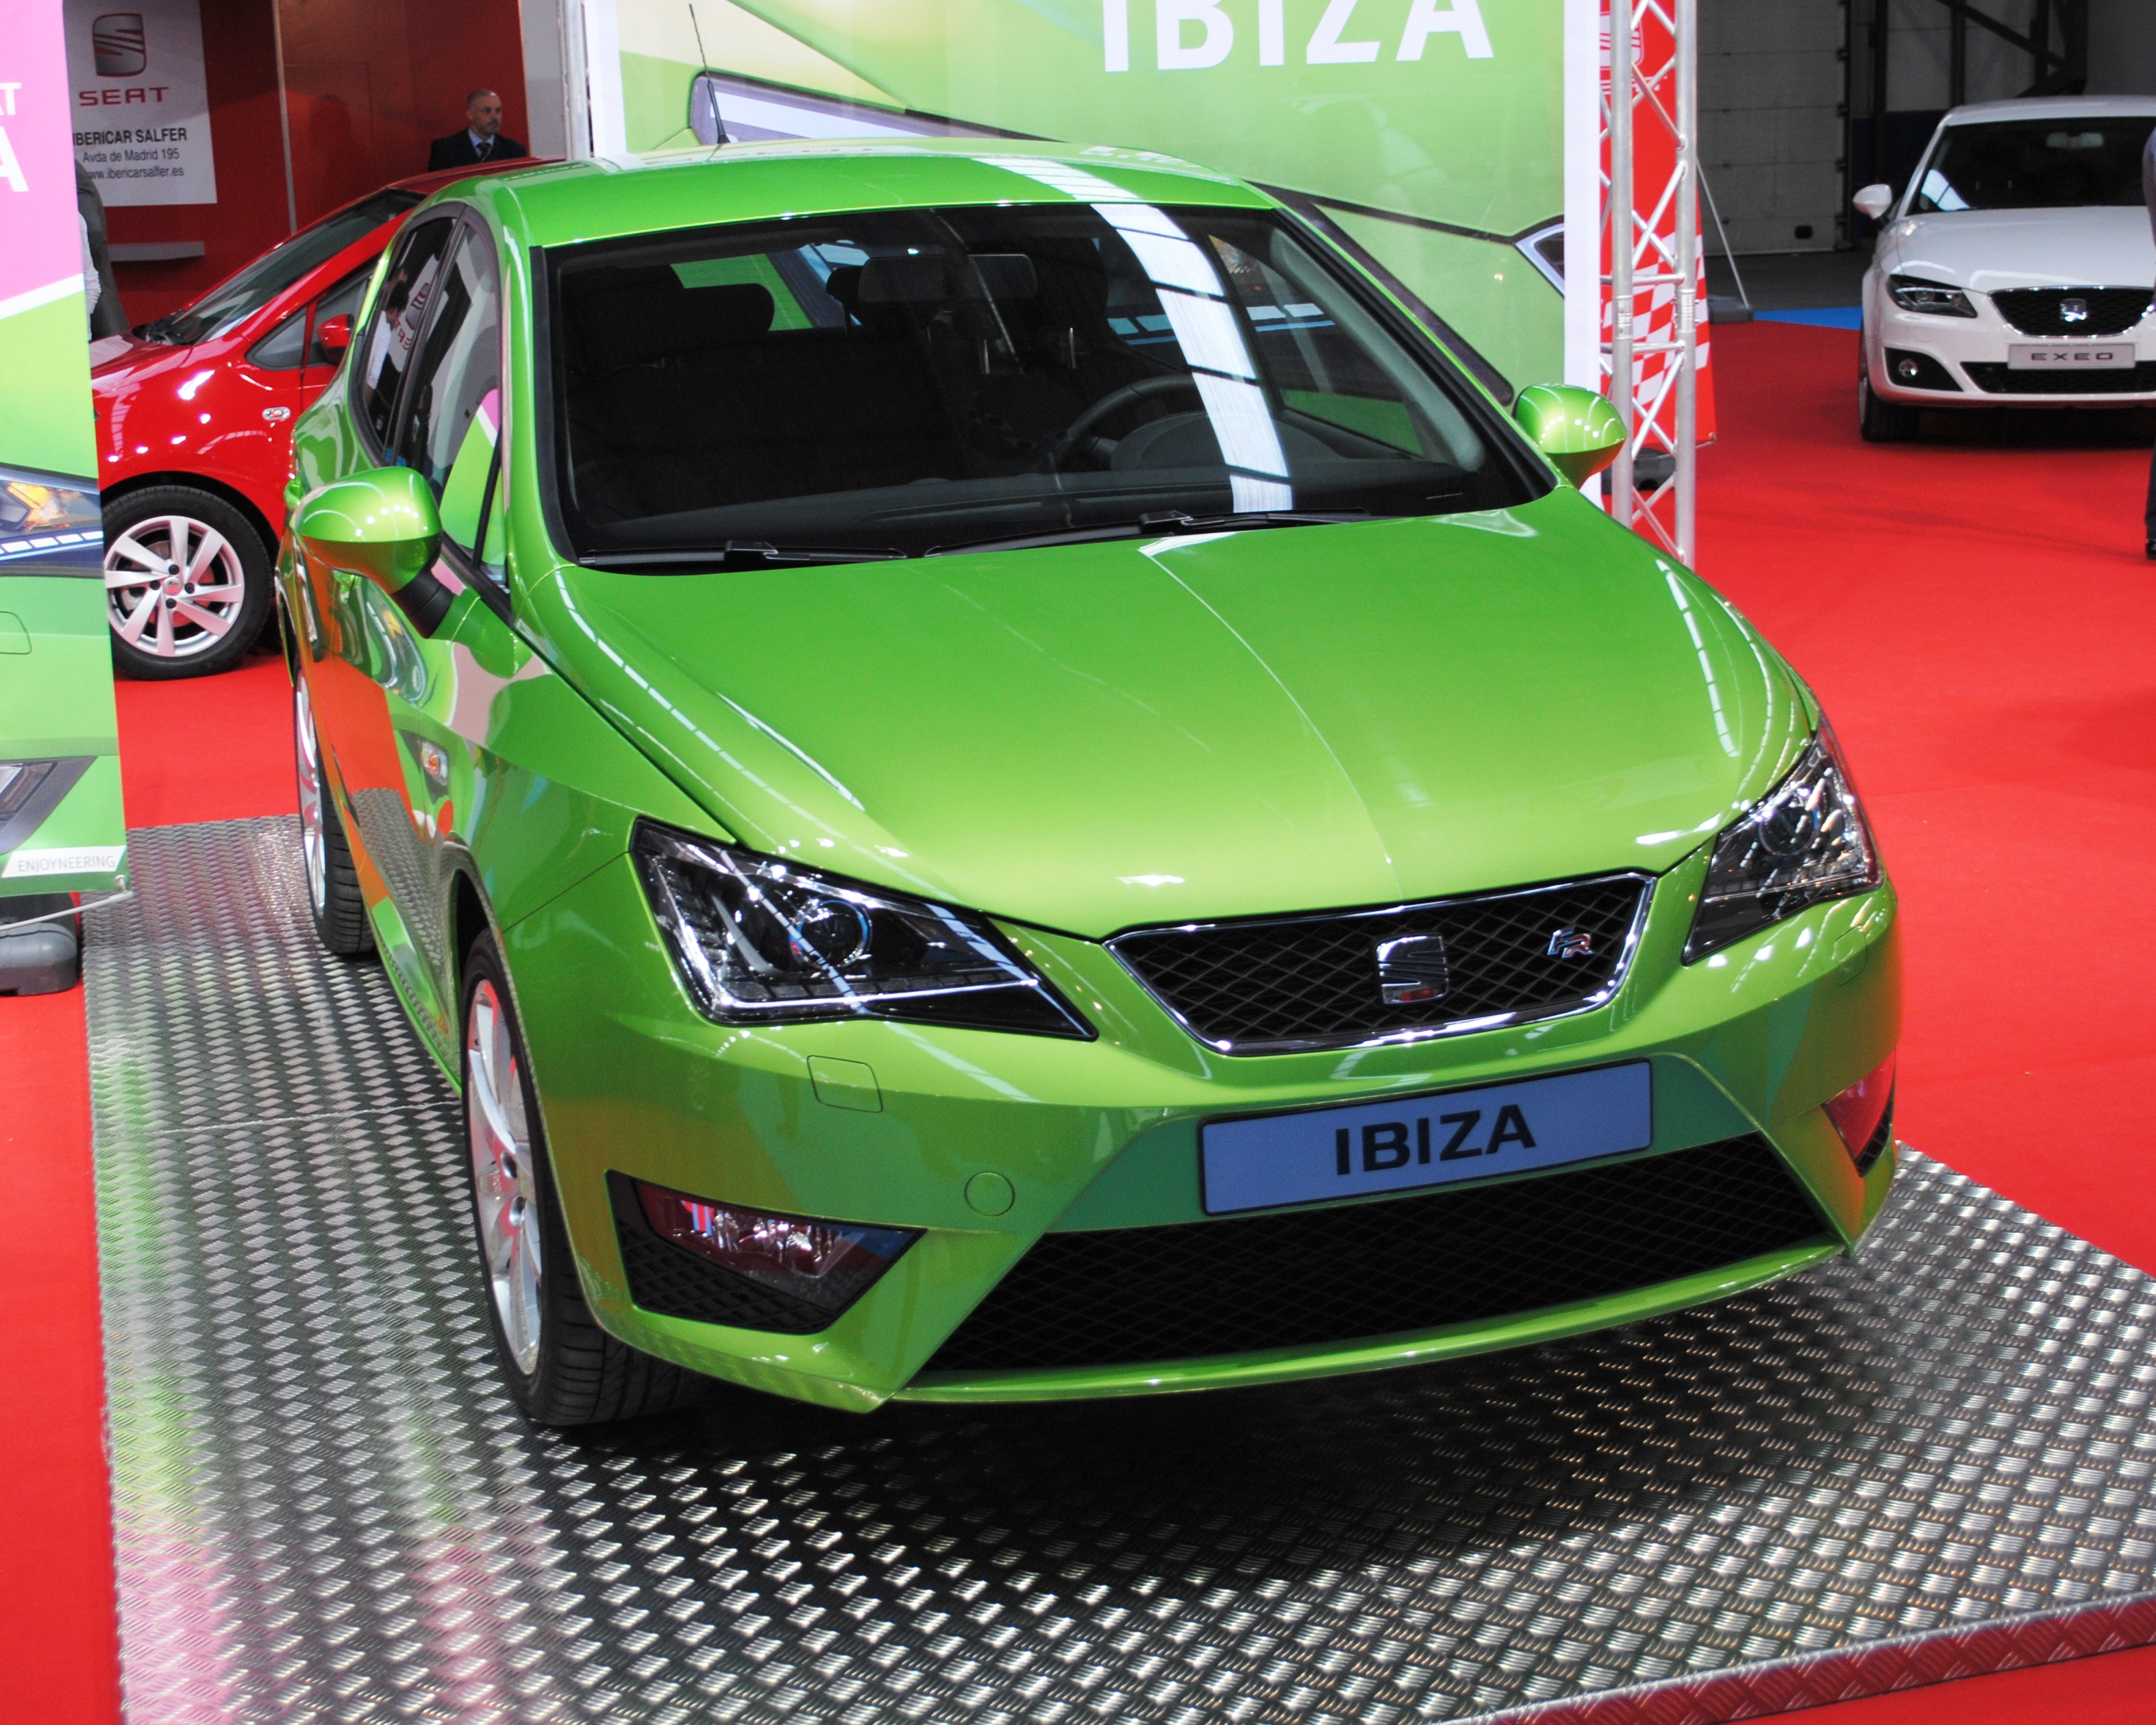 file seat ibiza 2012 ifevi jpg wikipedia. Black Bedroom Furniture Sets. Home Design Ideas